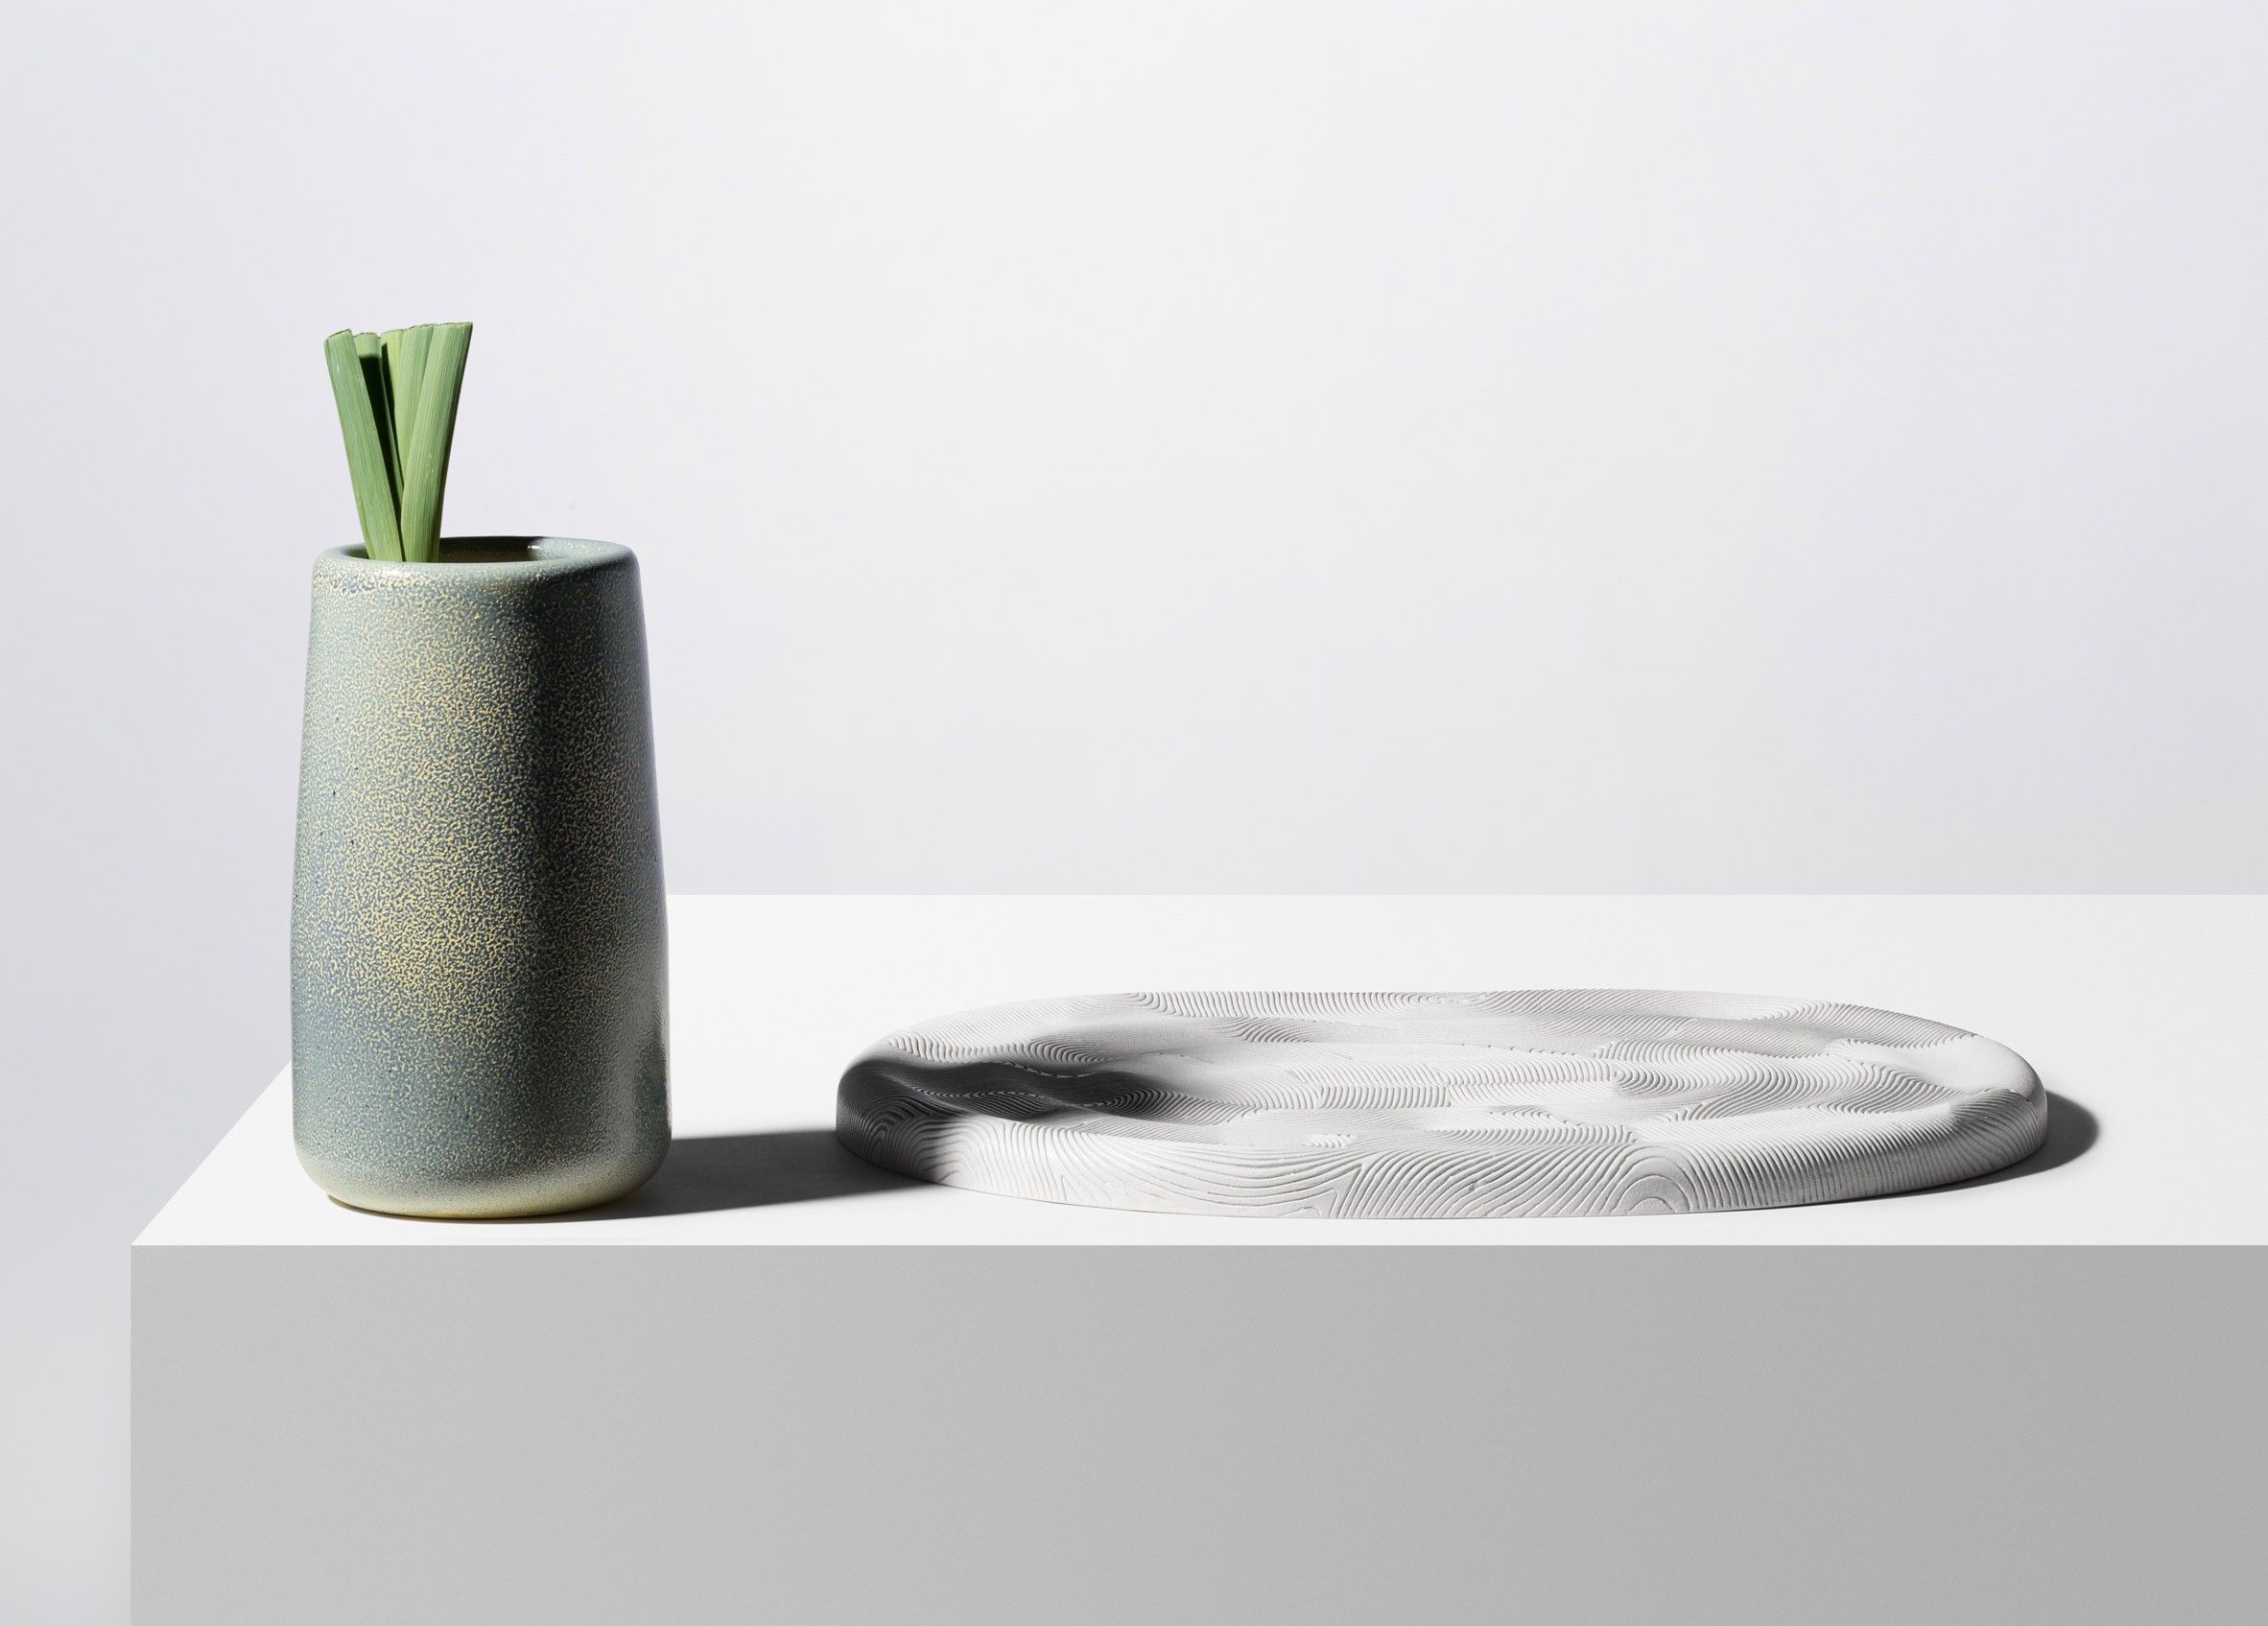 Dimitri Bähler designs range of irregular ceramic vessels